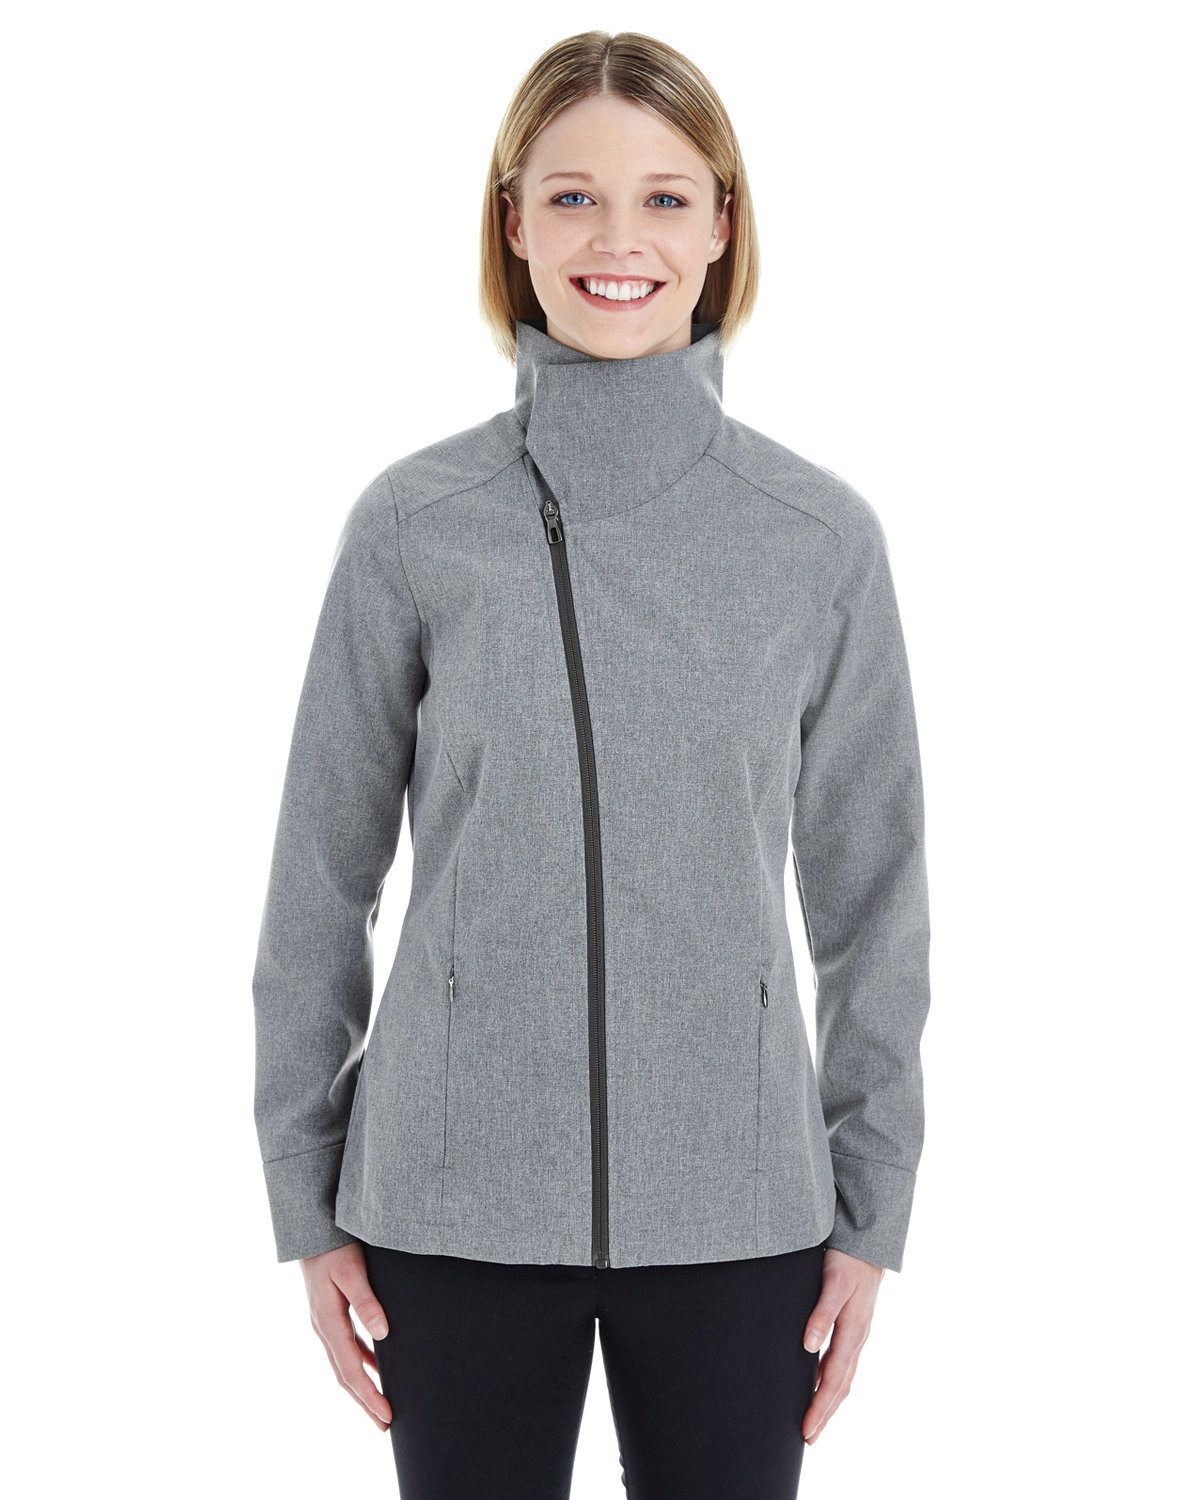 North End Ladies' Edge Soft Shell Jacket with Convertible Collar CITY GREY